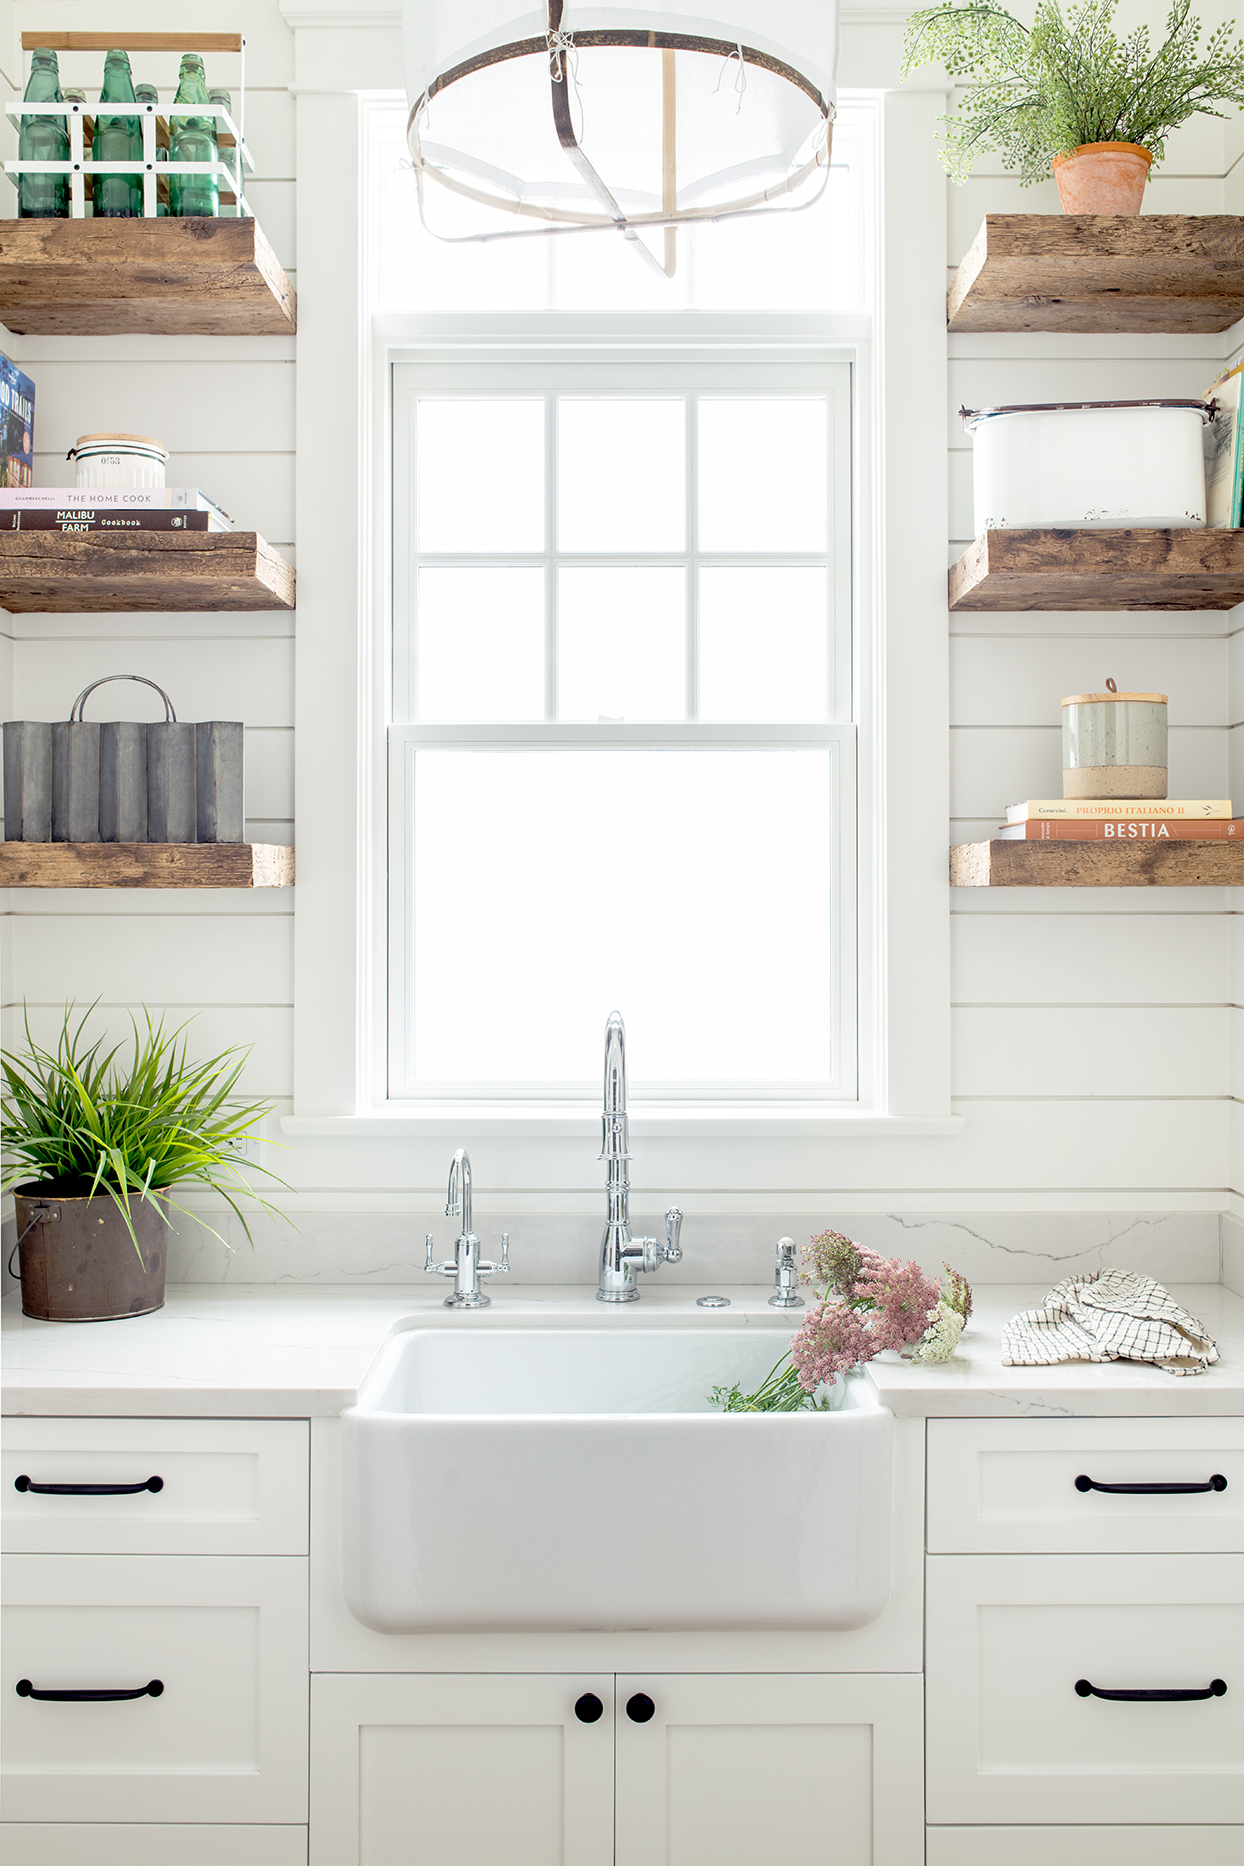 white kitchen sink area with rustic wooden shelves